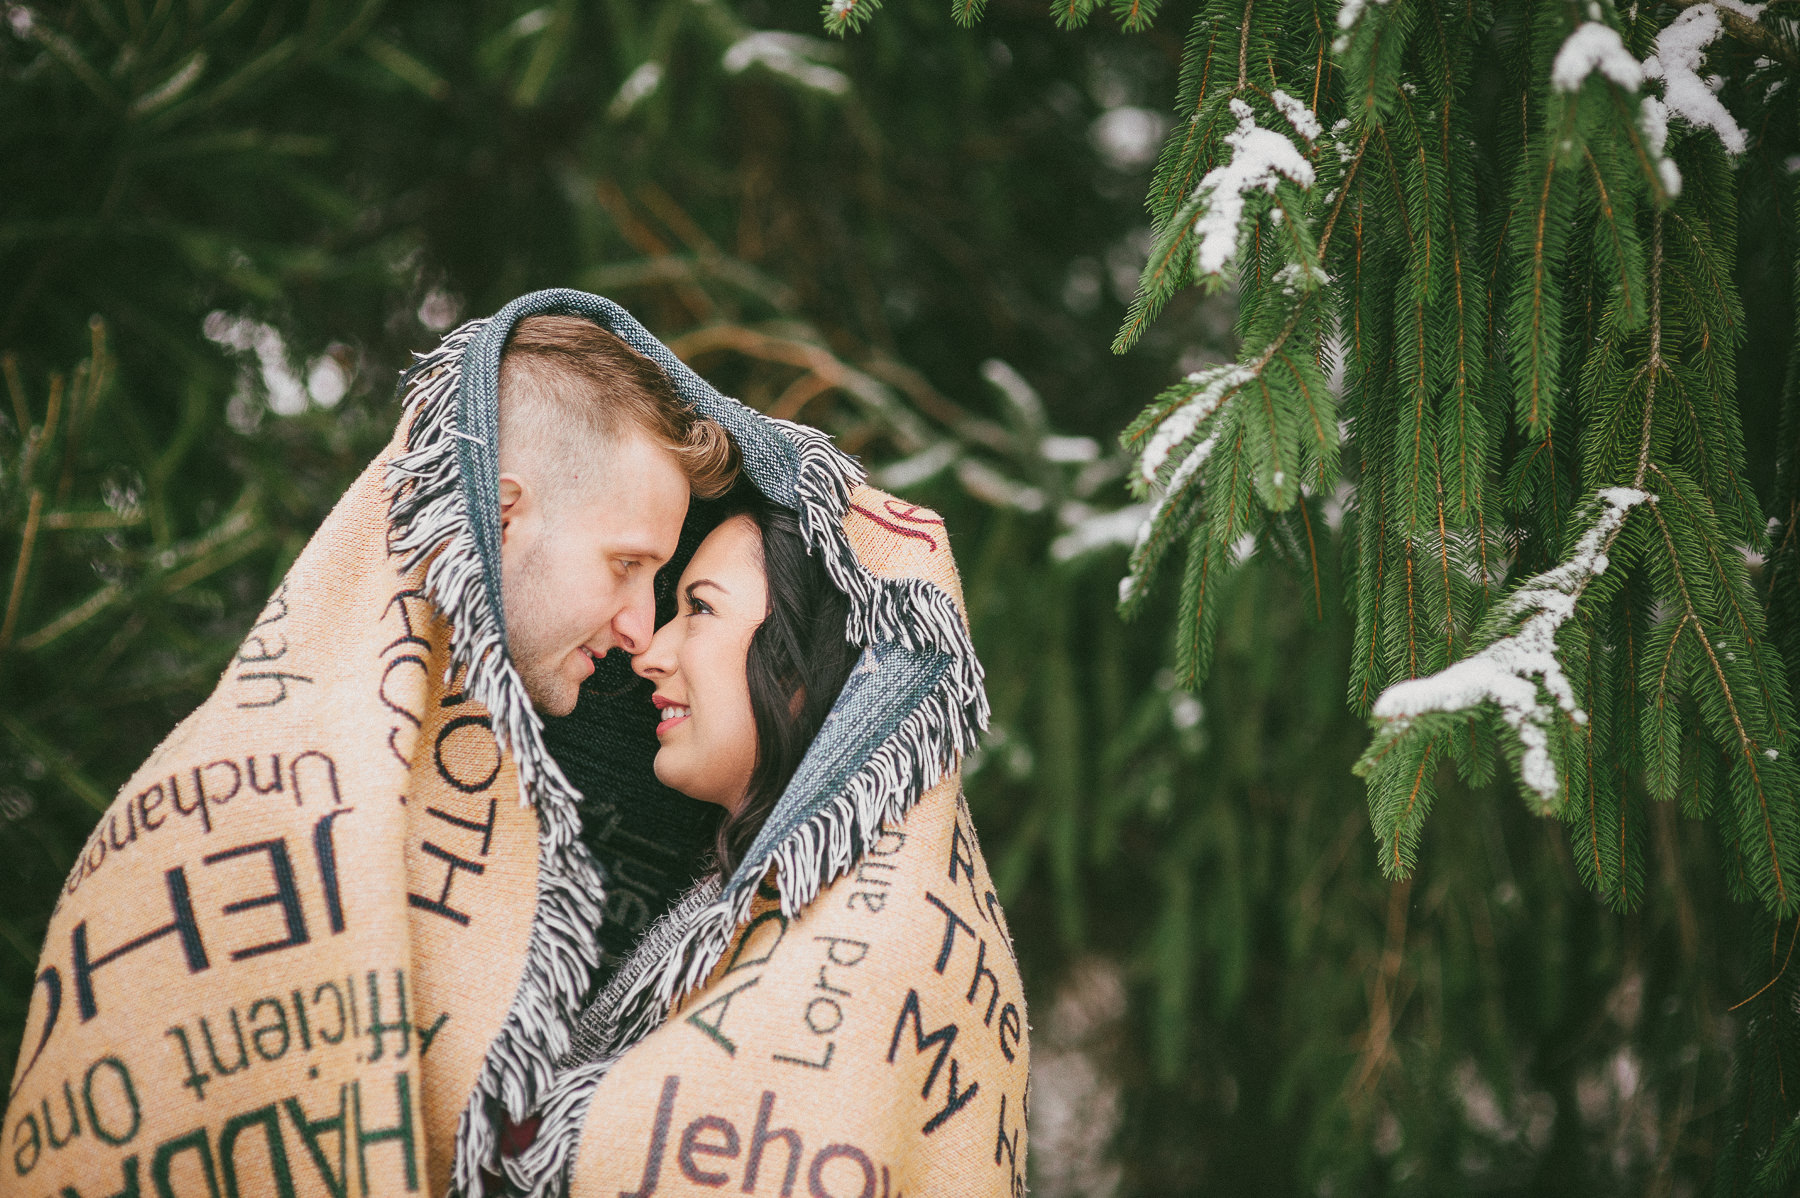 breighton-and-basette-photography-copyrighted-image-blog-abigail-and-ryne-engagement-041.jpg